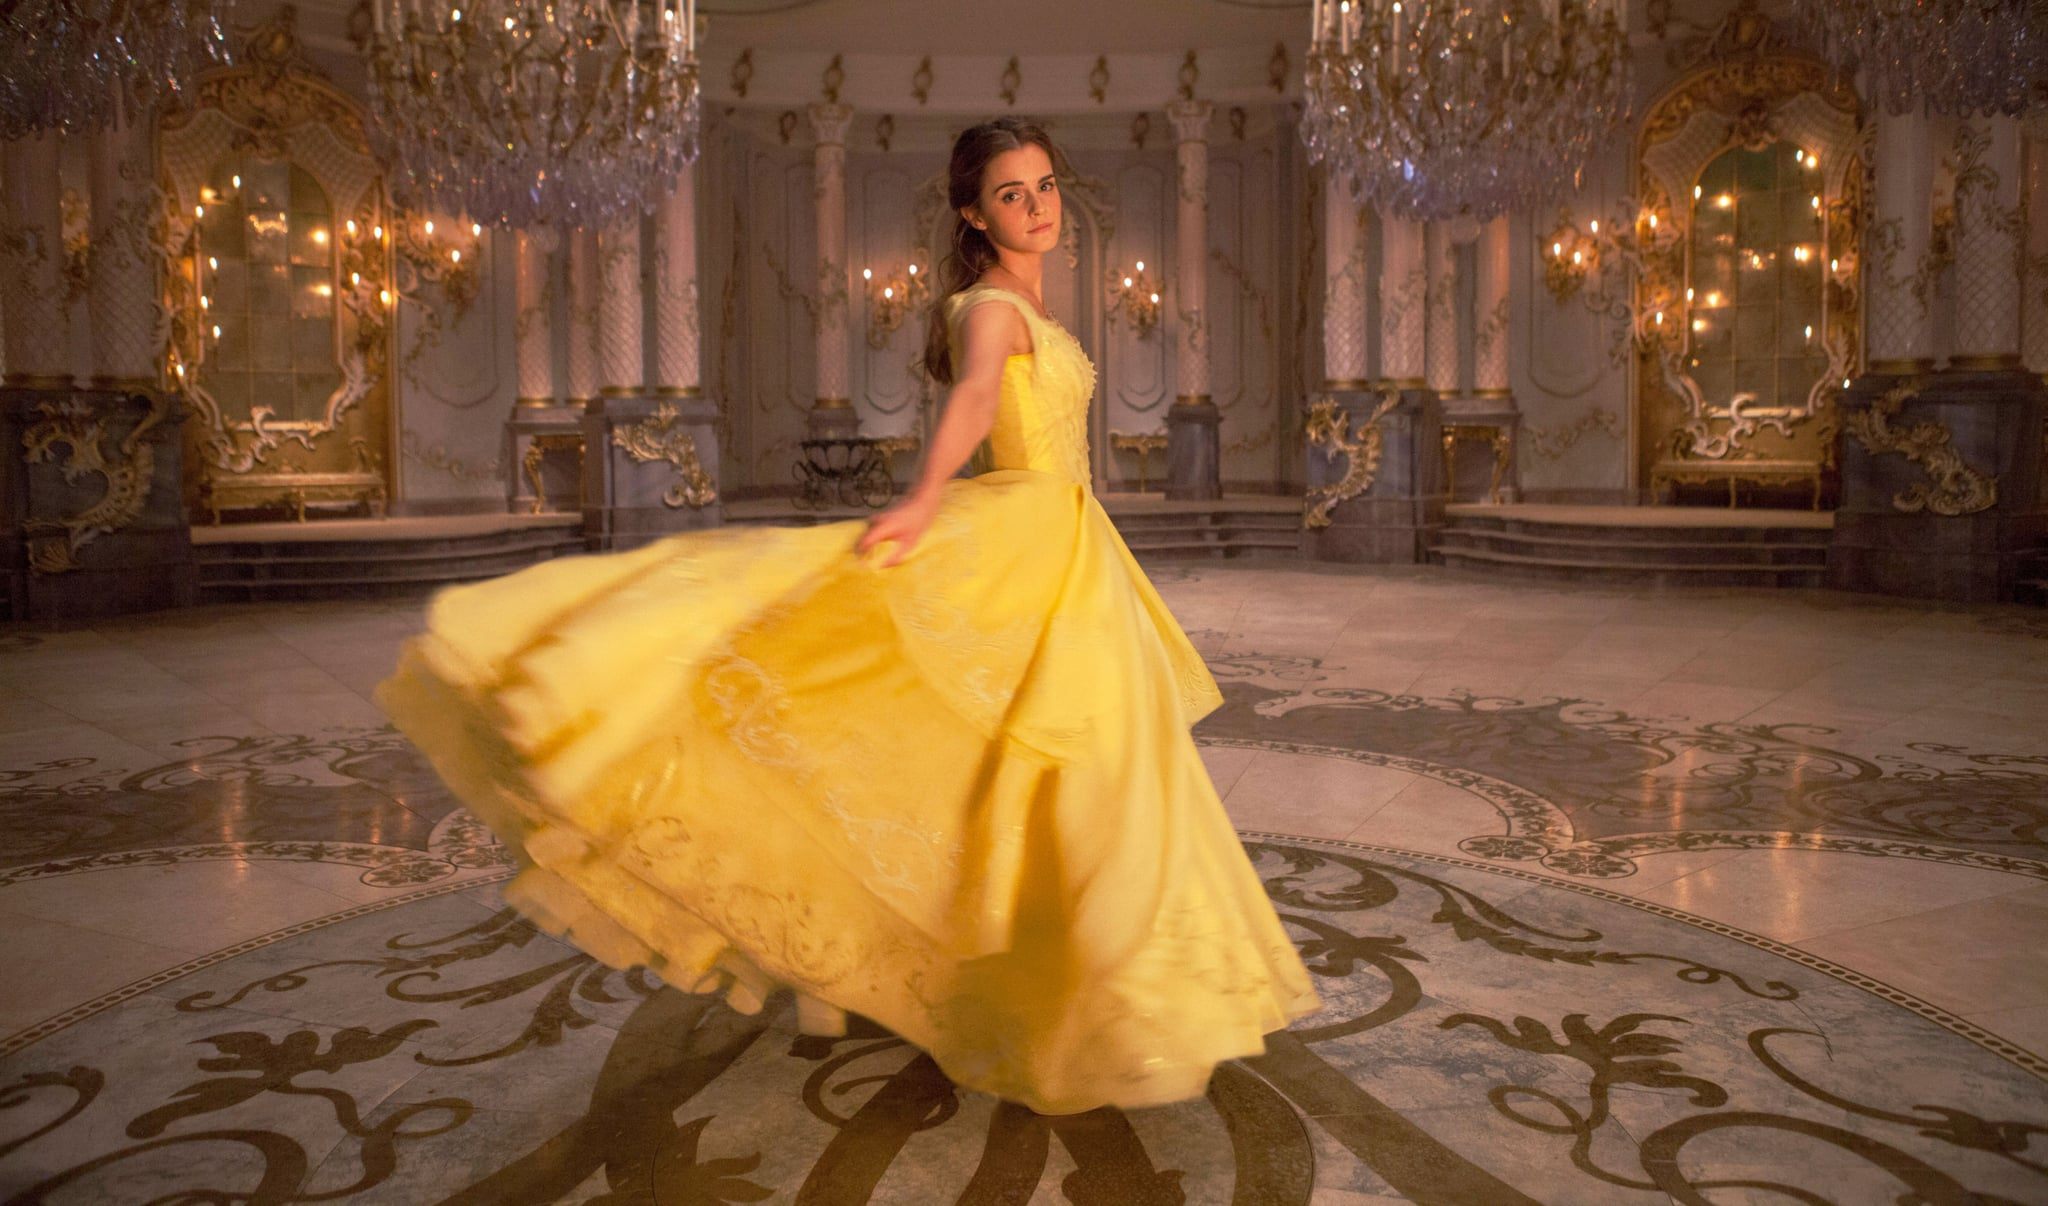 Beauty And The Beast May Get A Sequel